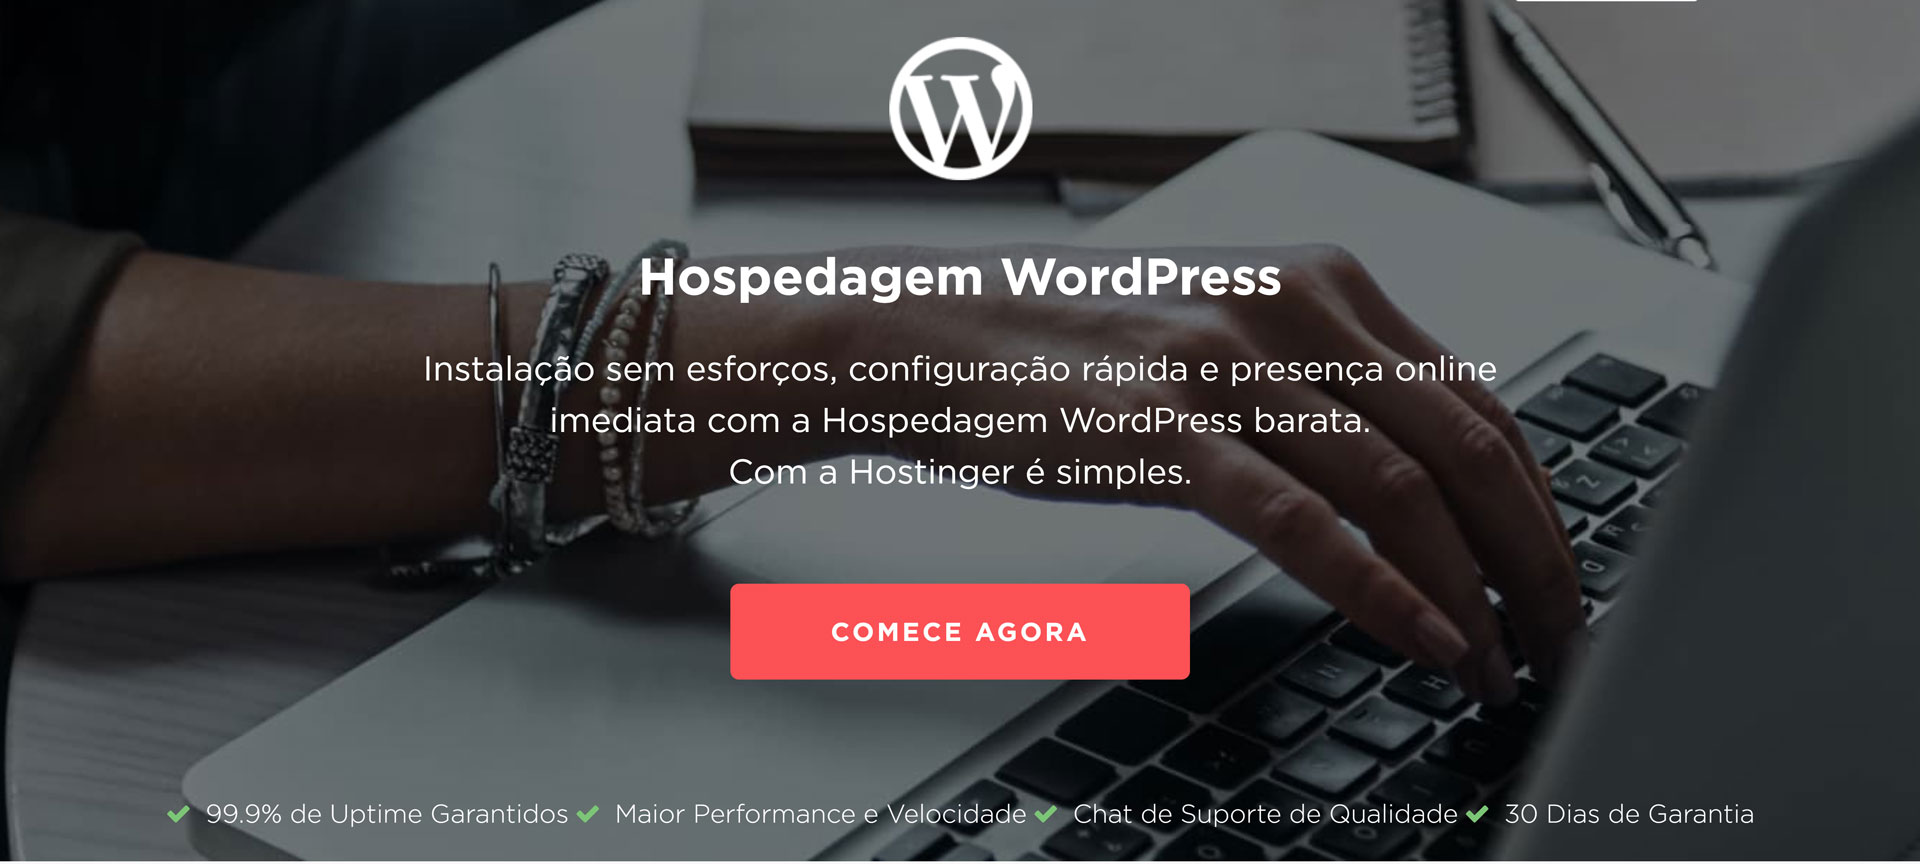 hostinger hospedagem wordpress